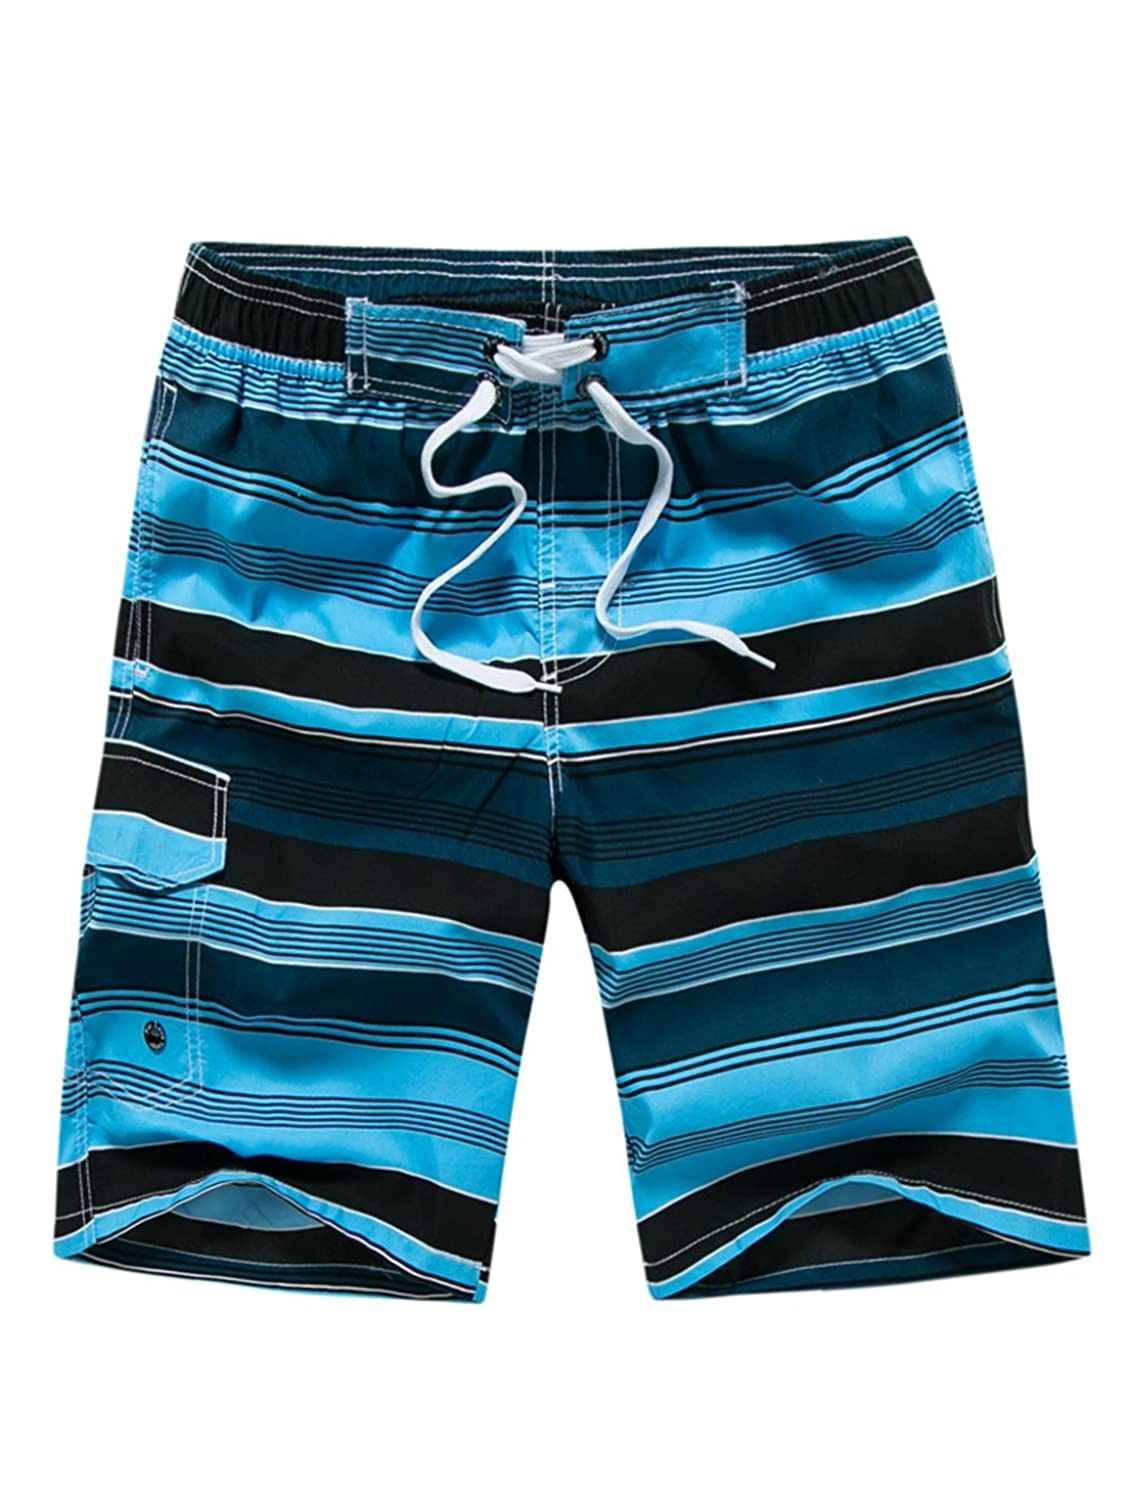 Aivtalk Men's Quick Dry Swim Trunks Colorful Strip Beach Shorts with Mesh Lining